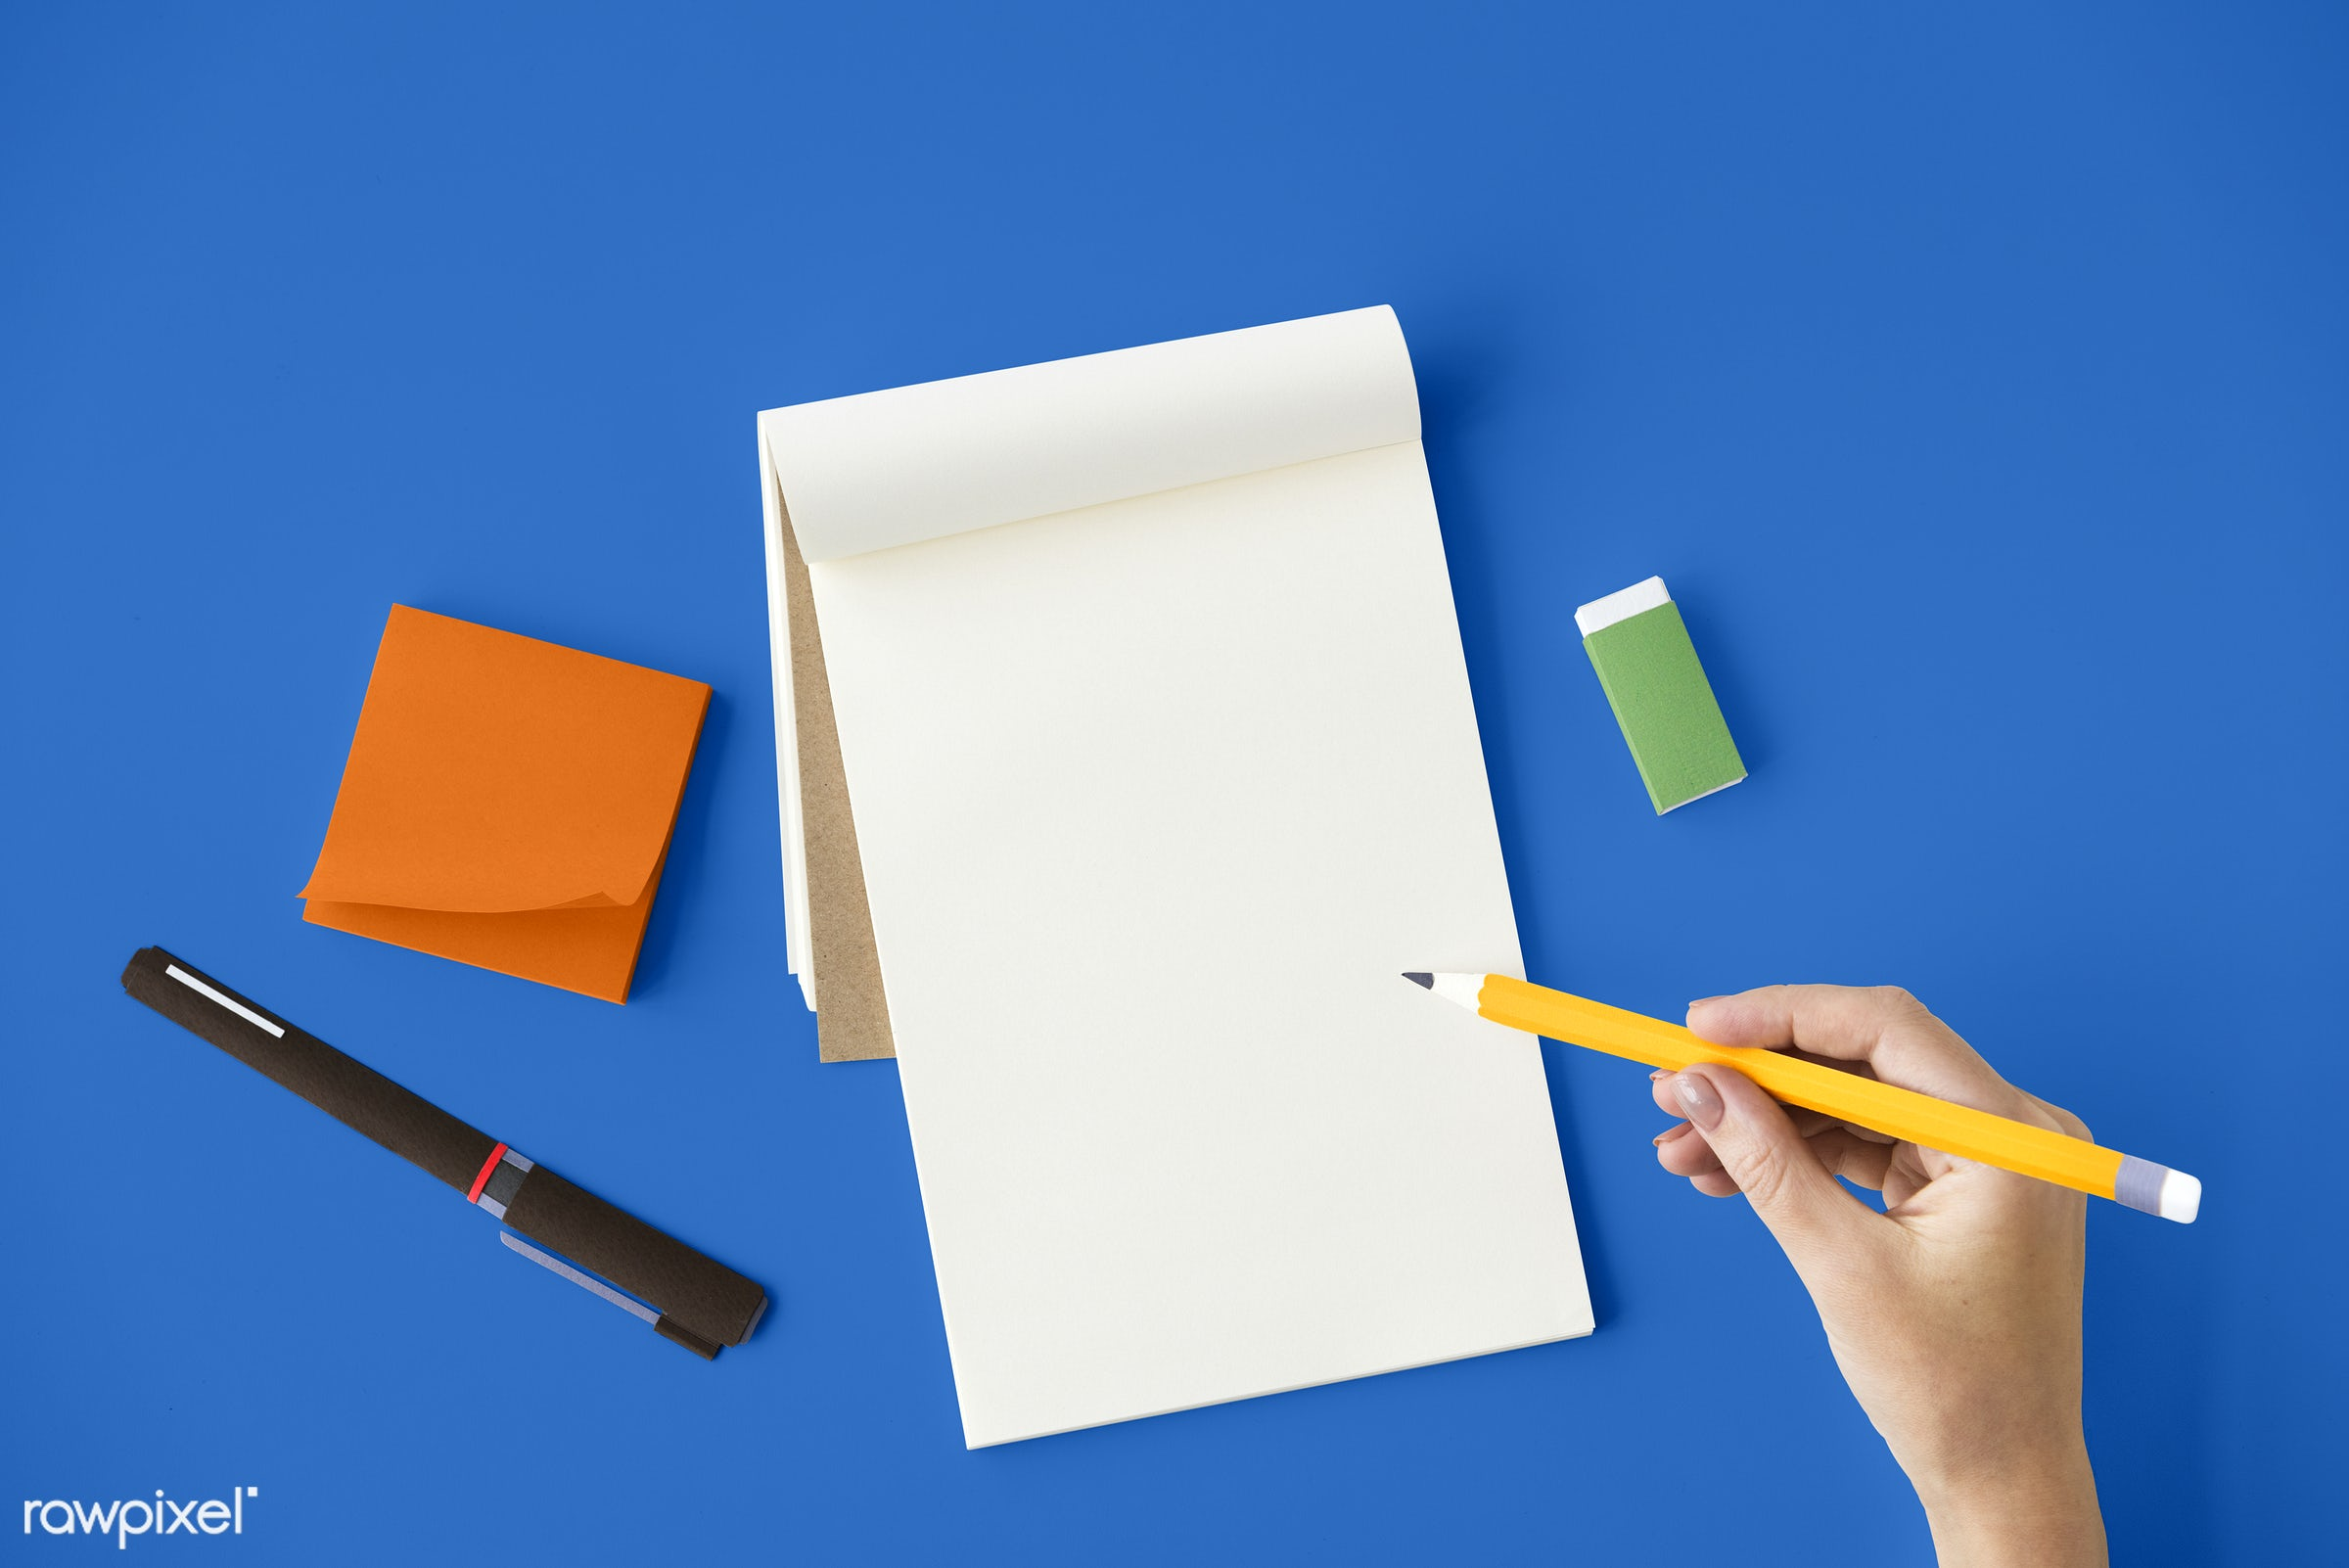 stationery, notepad, pencil, aerial view, blank, blue table, copy space, design space, empty, eraser, hand, notebook,...